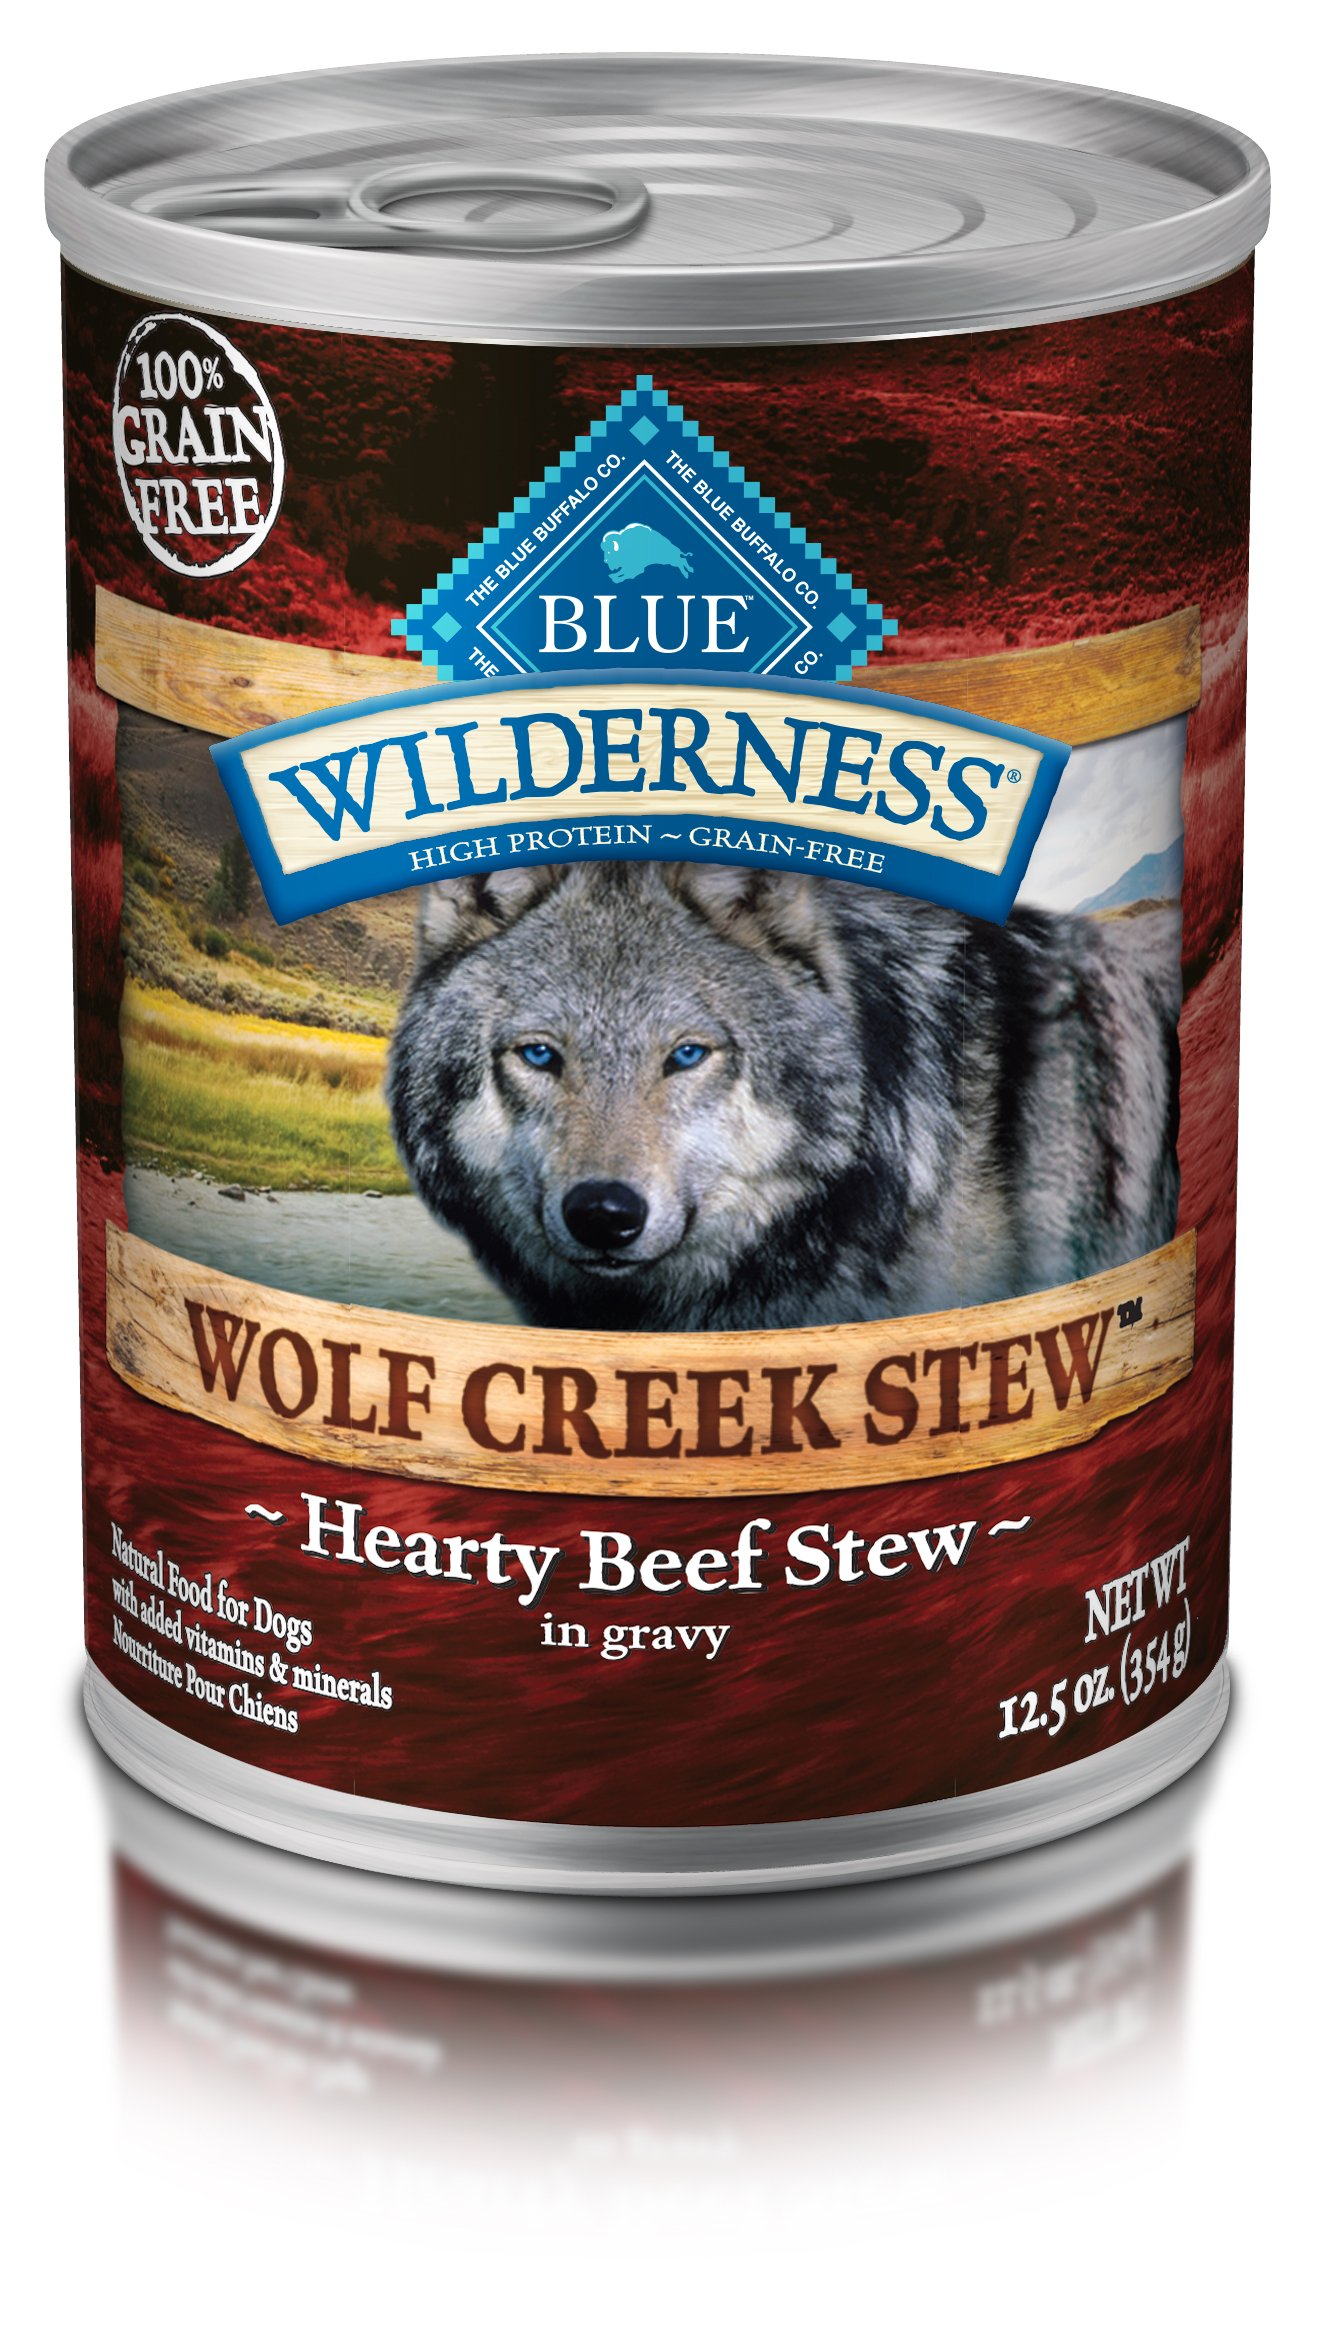 Blue Buffalo Wilderness Wolf Creek Stew High Protein Grain Free, Natural Wet Dog Food, Hearty Beef Stew In Gravy 12.5-Oz Can (Pack Of 12) by Blue Buffalo